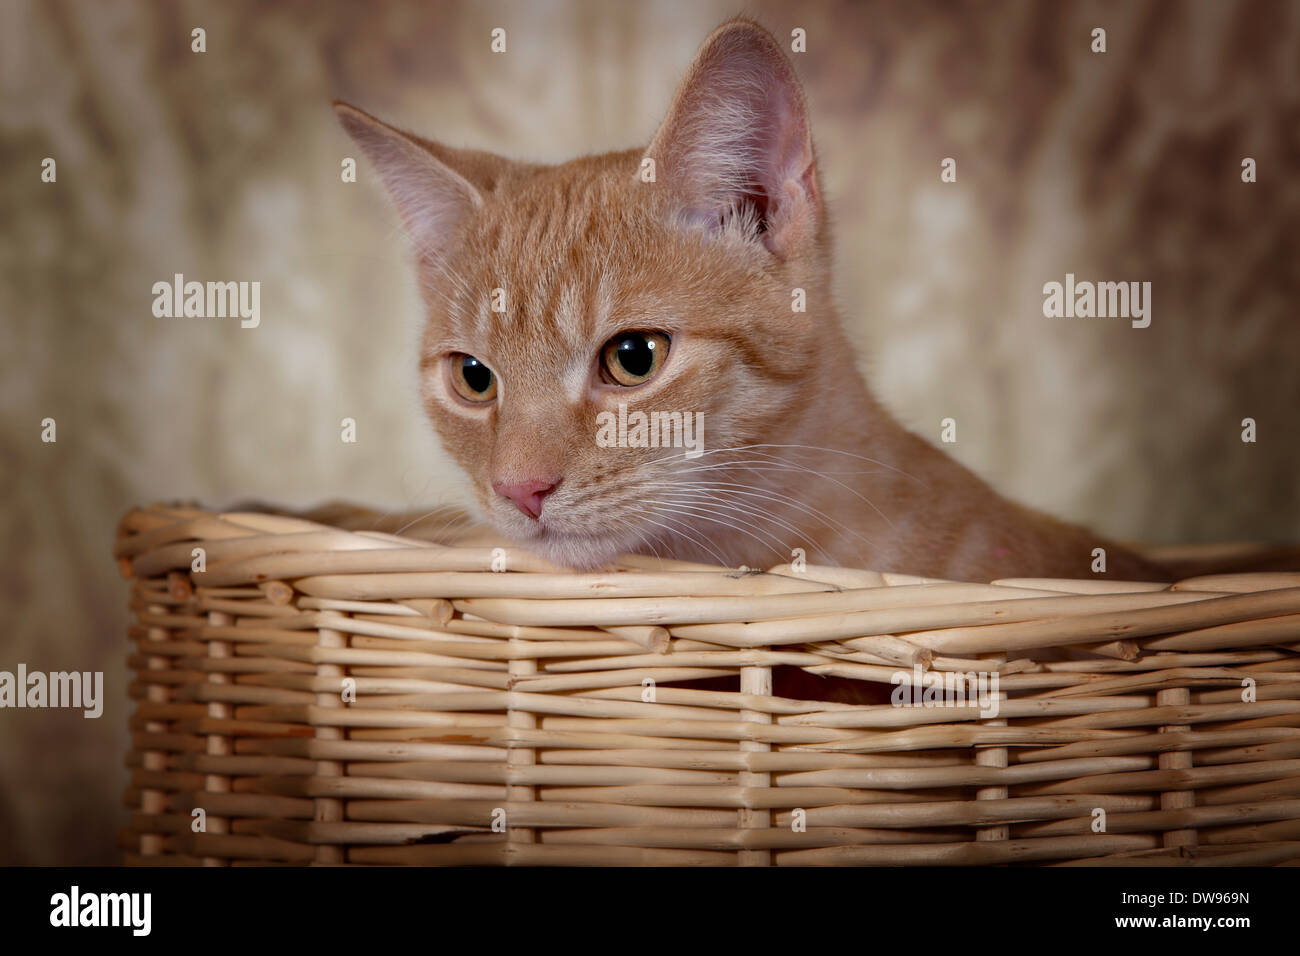 Red tabby domestic cat, circa 6 months, looking out of a basket - Stock Image